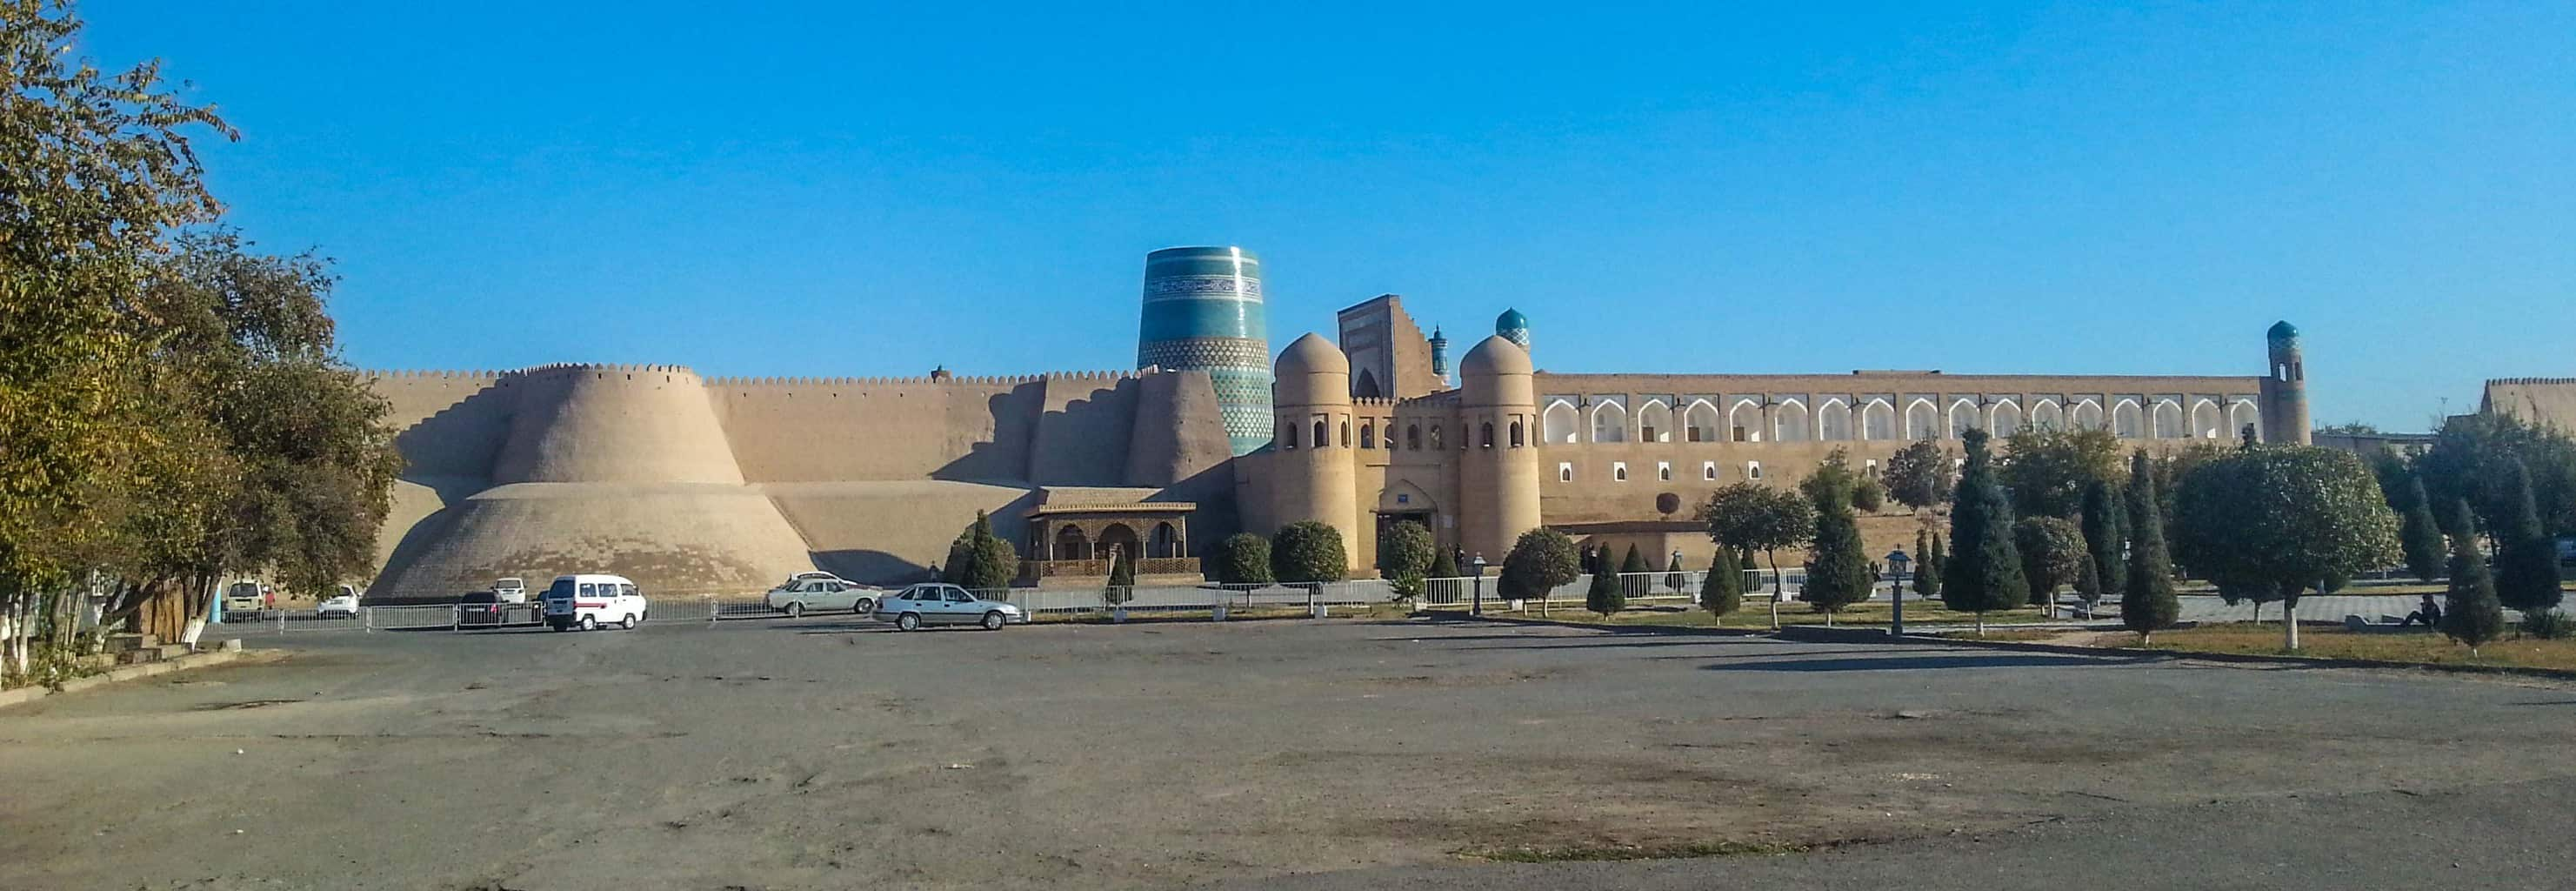 Khiva old town